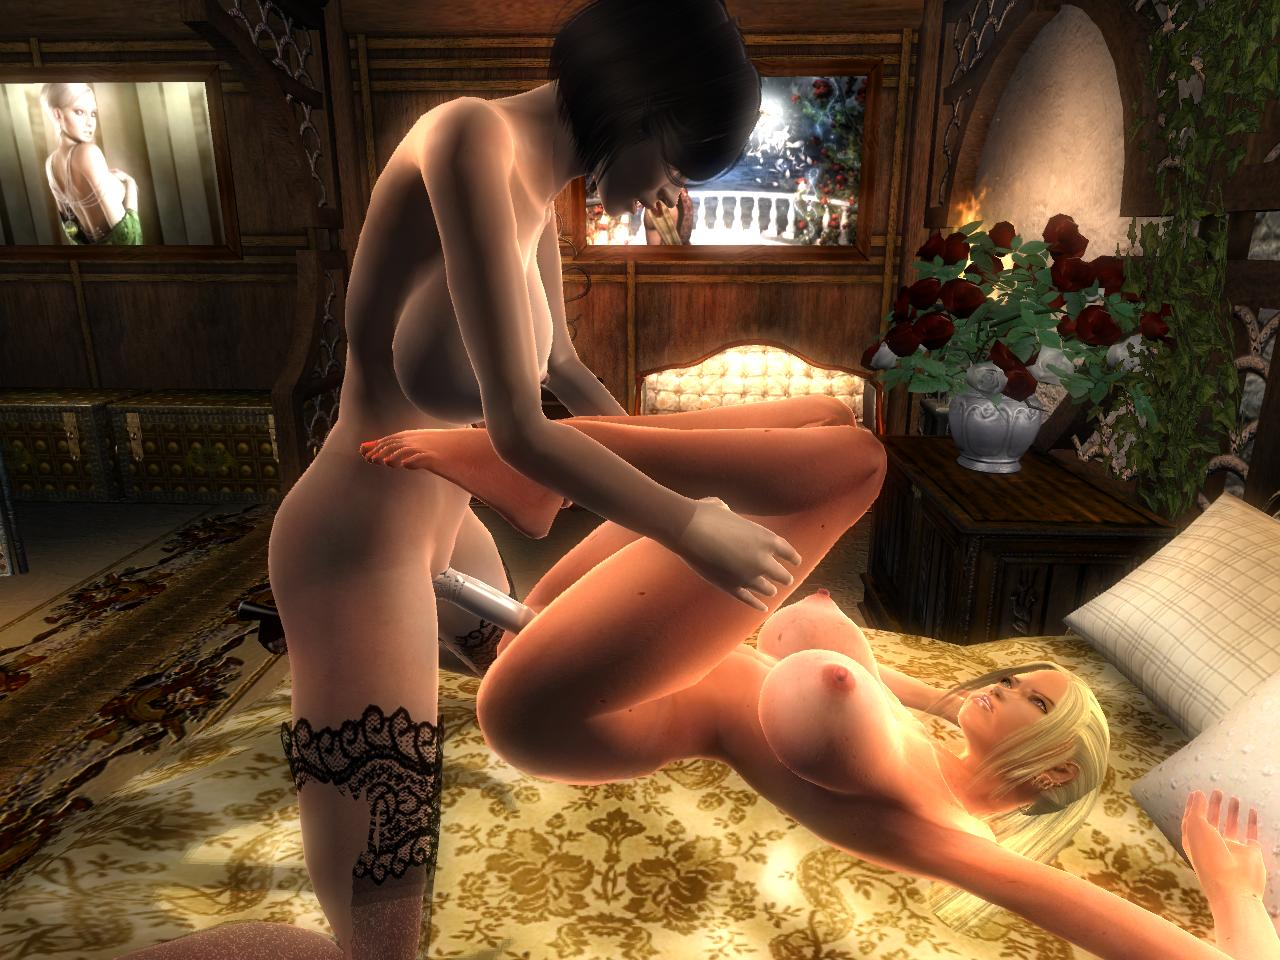 Oblivion sex animations mod hentai images